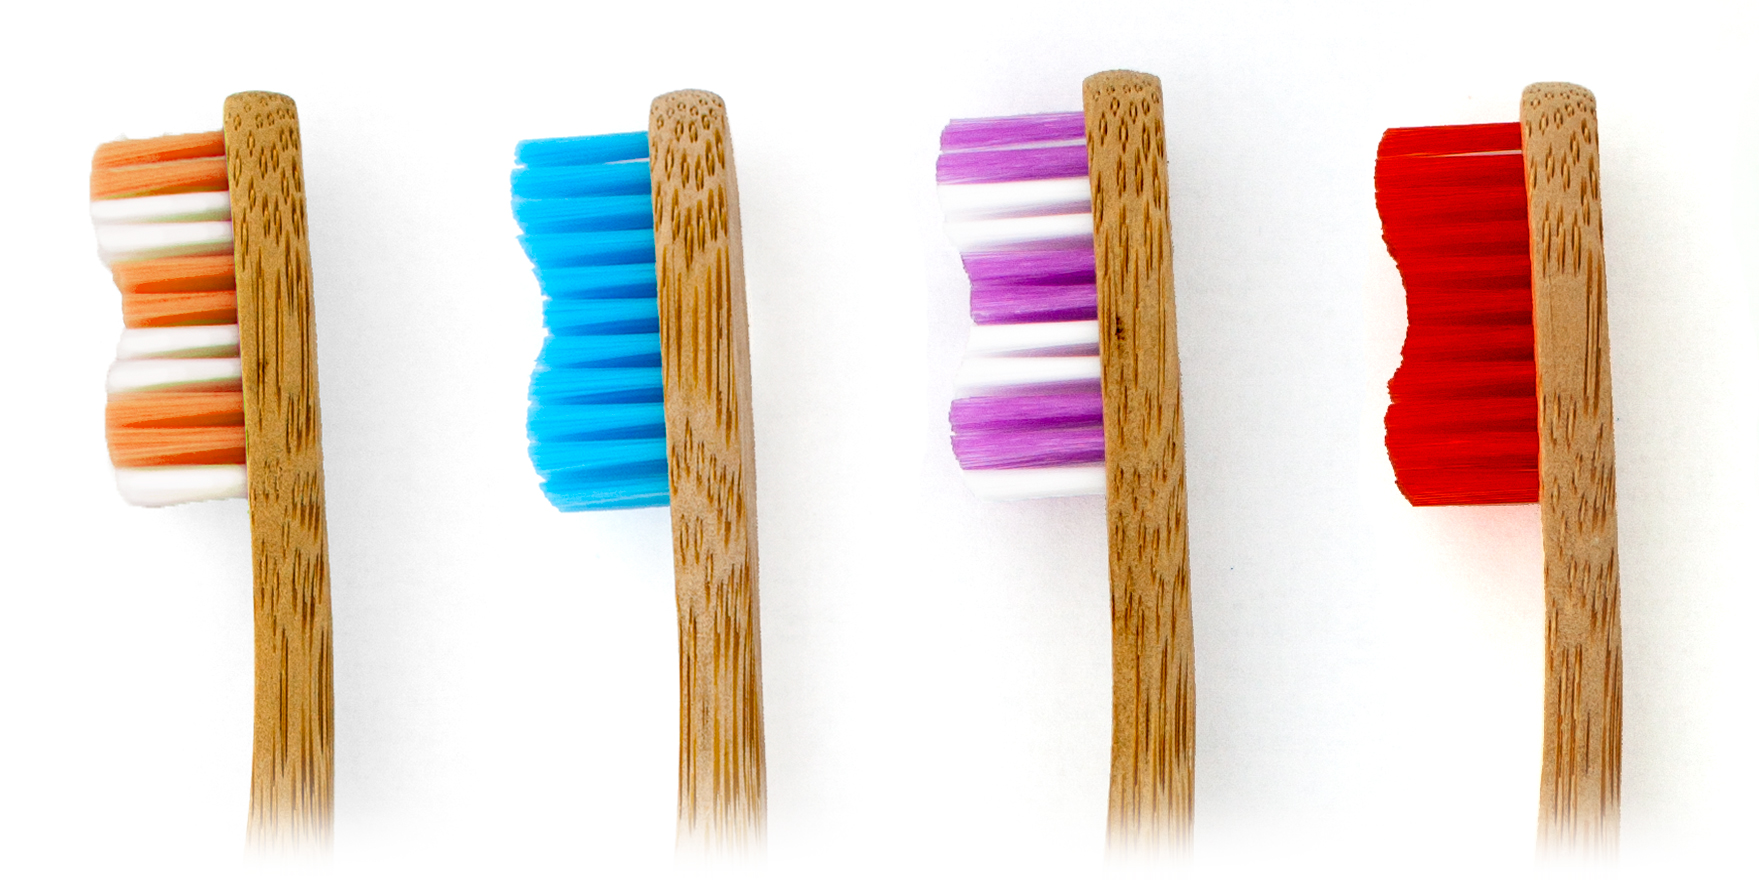 Nylon bristled bamboo toothbrush